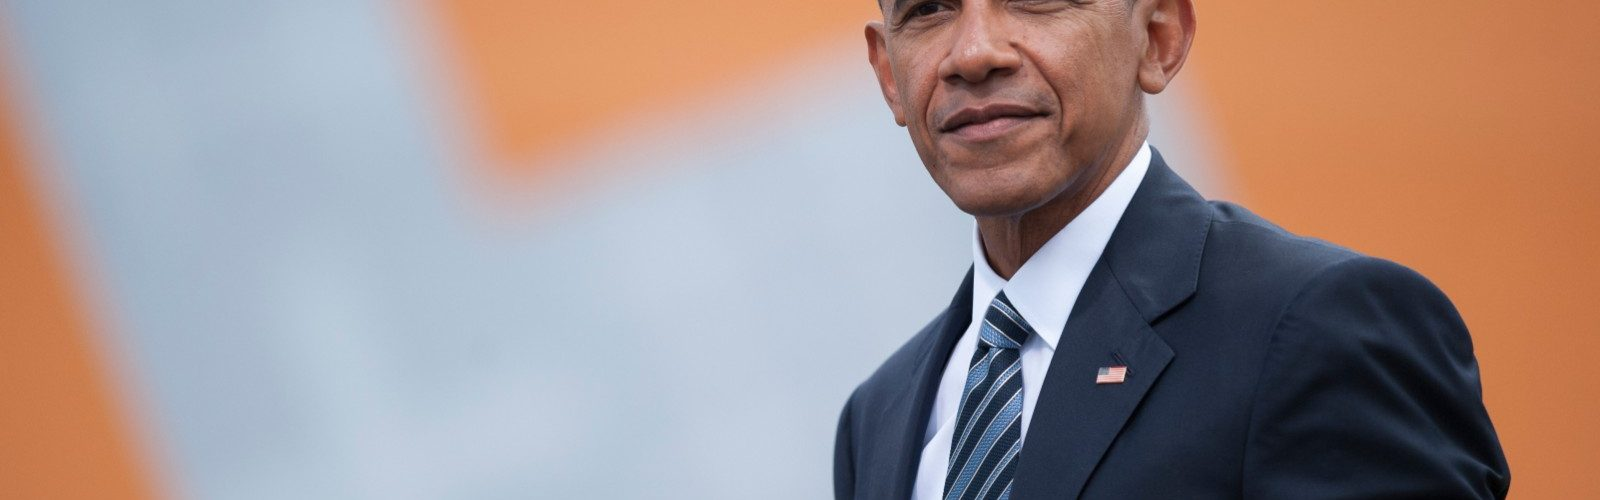 Barack Obama in Delhi Today, will meet 300 young leaders